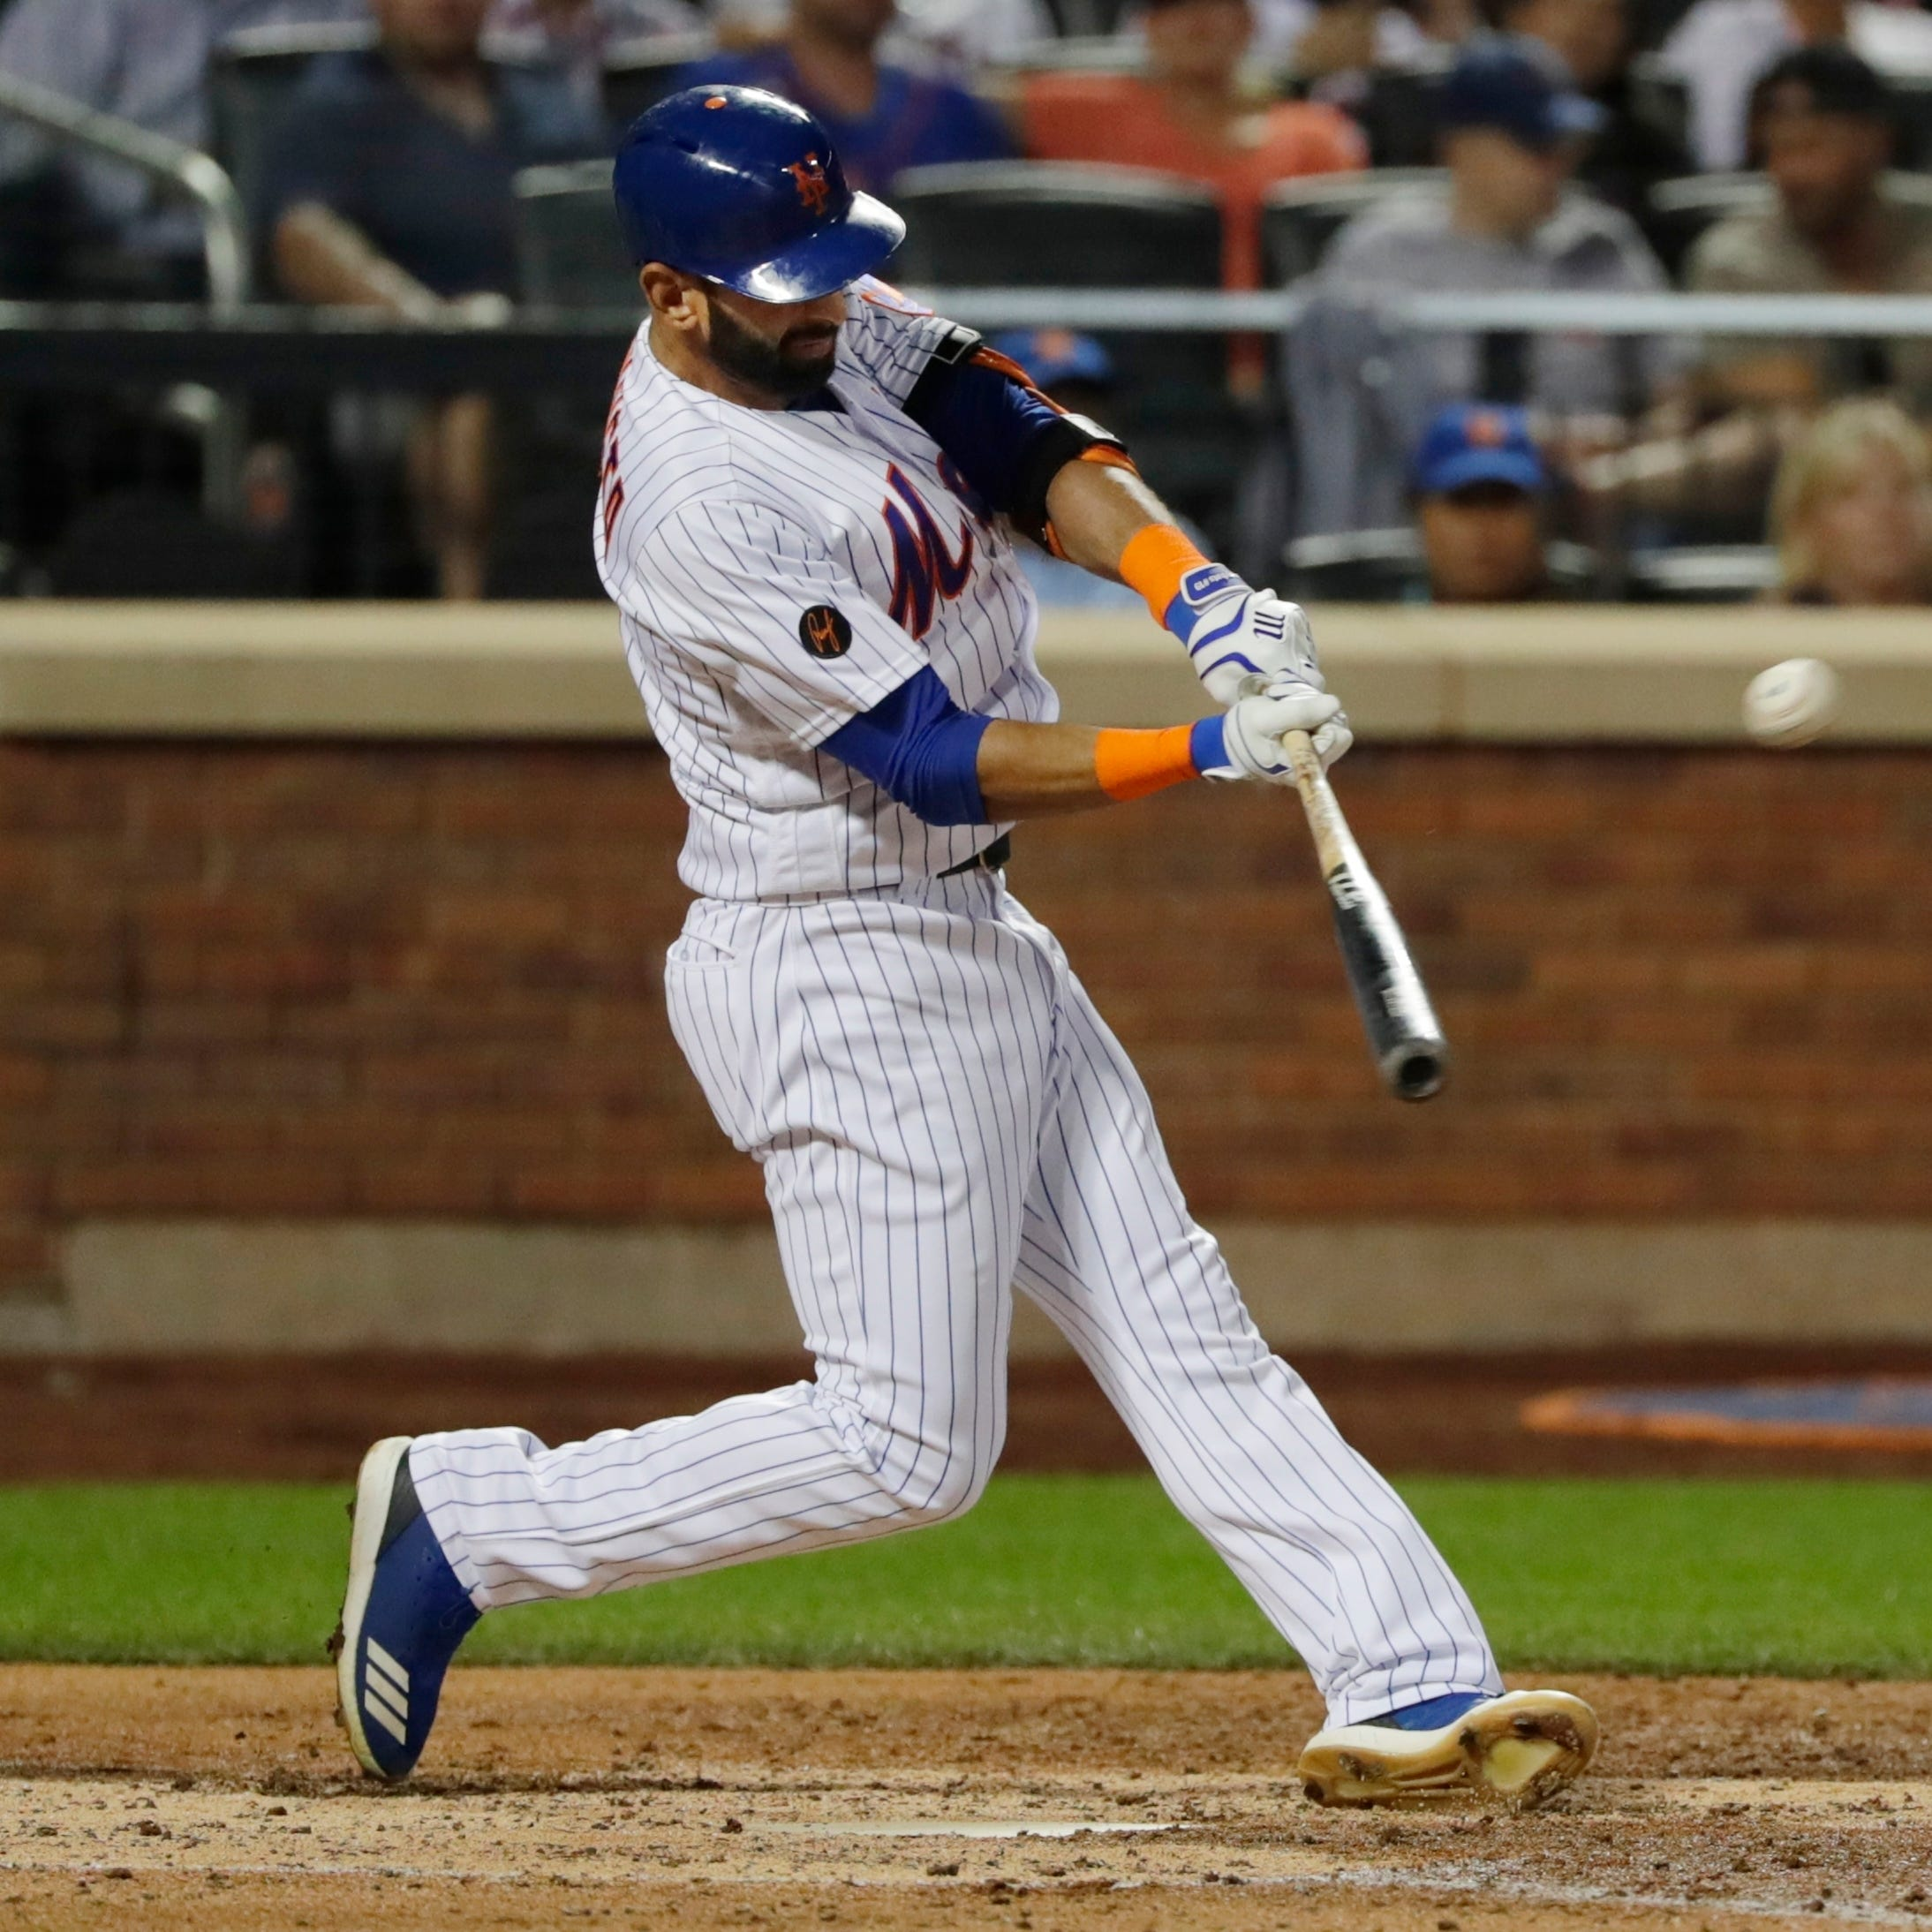 MLB trade: Philadelphia Phillies acquire slugger Jose Bautista from New York Mets